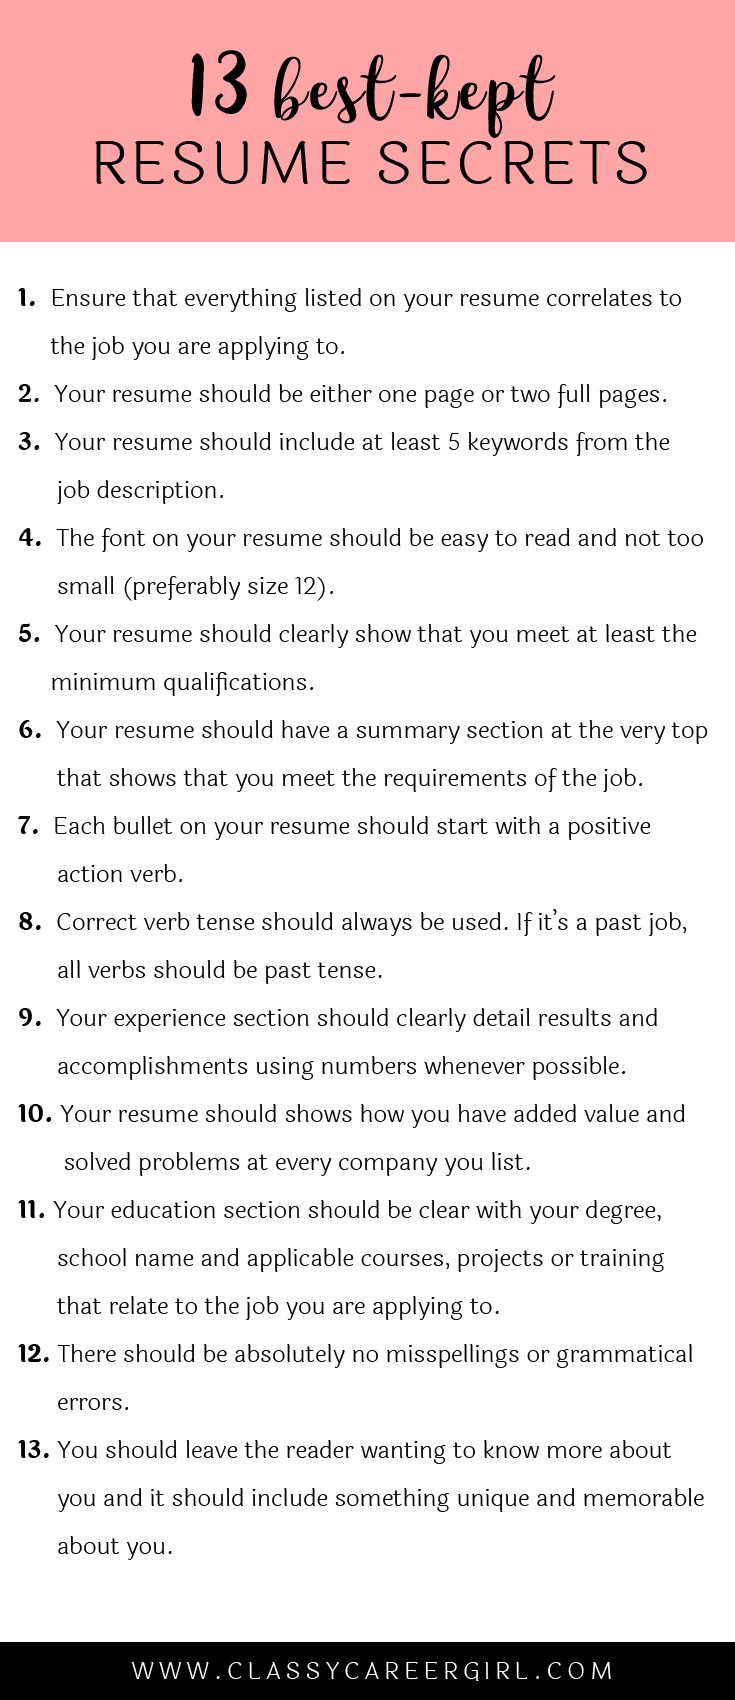 Opposenewapstandardsus  Unique  Ideas About Resume On Pinterest  Cv Format Resume Cv And  With Fetching Some Hiring Managers Will Toss Your Resume Out If You Dont Know These  With Delectable Resume For Nursing Also Film Resume Template In Addition References On Resumes And Resume Maker Free Online As Well As Resume Update Additionally Sanford Brown Optimal Resume From Pinterestcom With Opposenewapstandardsus  Fetching  Ideas About Resume On Pinterest  Cv Format Resume Cv And  With Delectable Some Hiring Managers Will Toss Your Resume Out If You Dont Know These  And Unique Resume For Nursing Also Film Resume Template In Addition References On Resumes From Pinterestcom